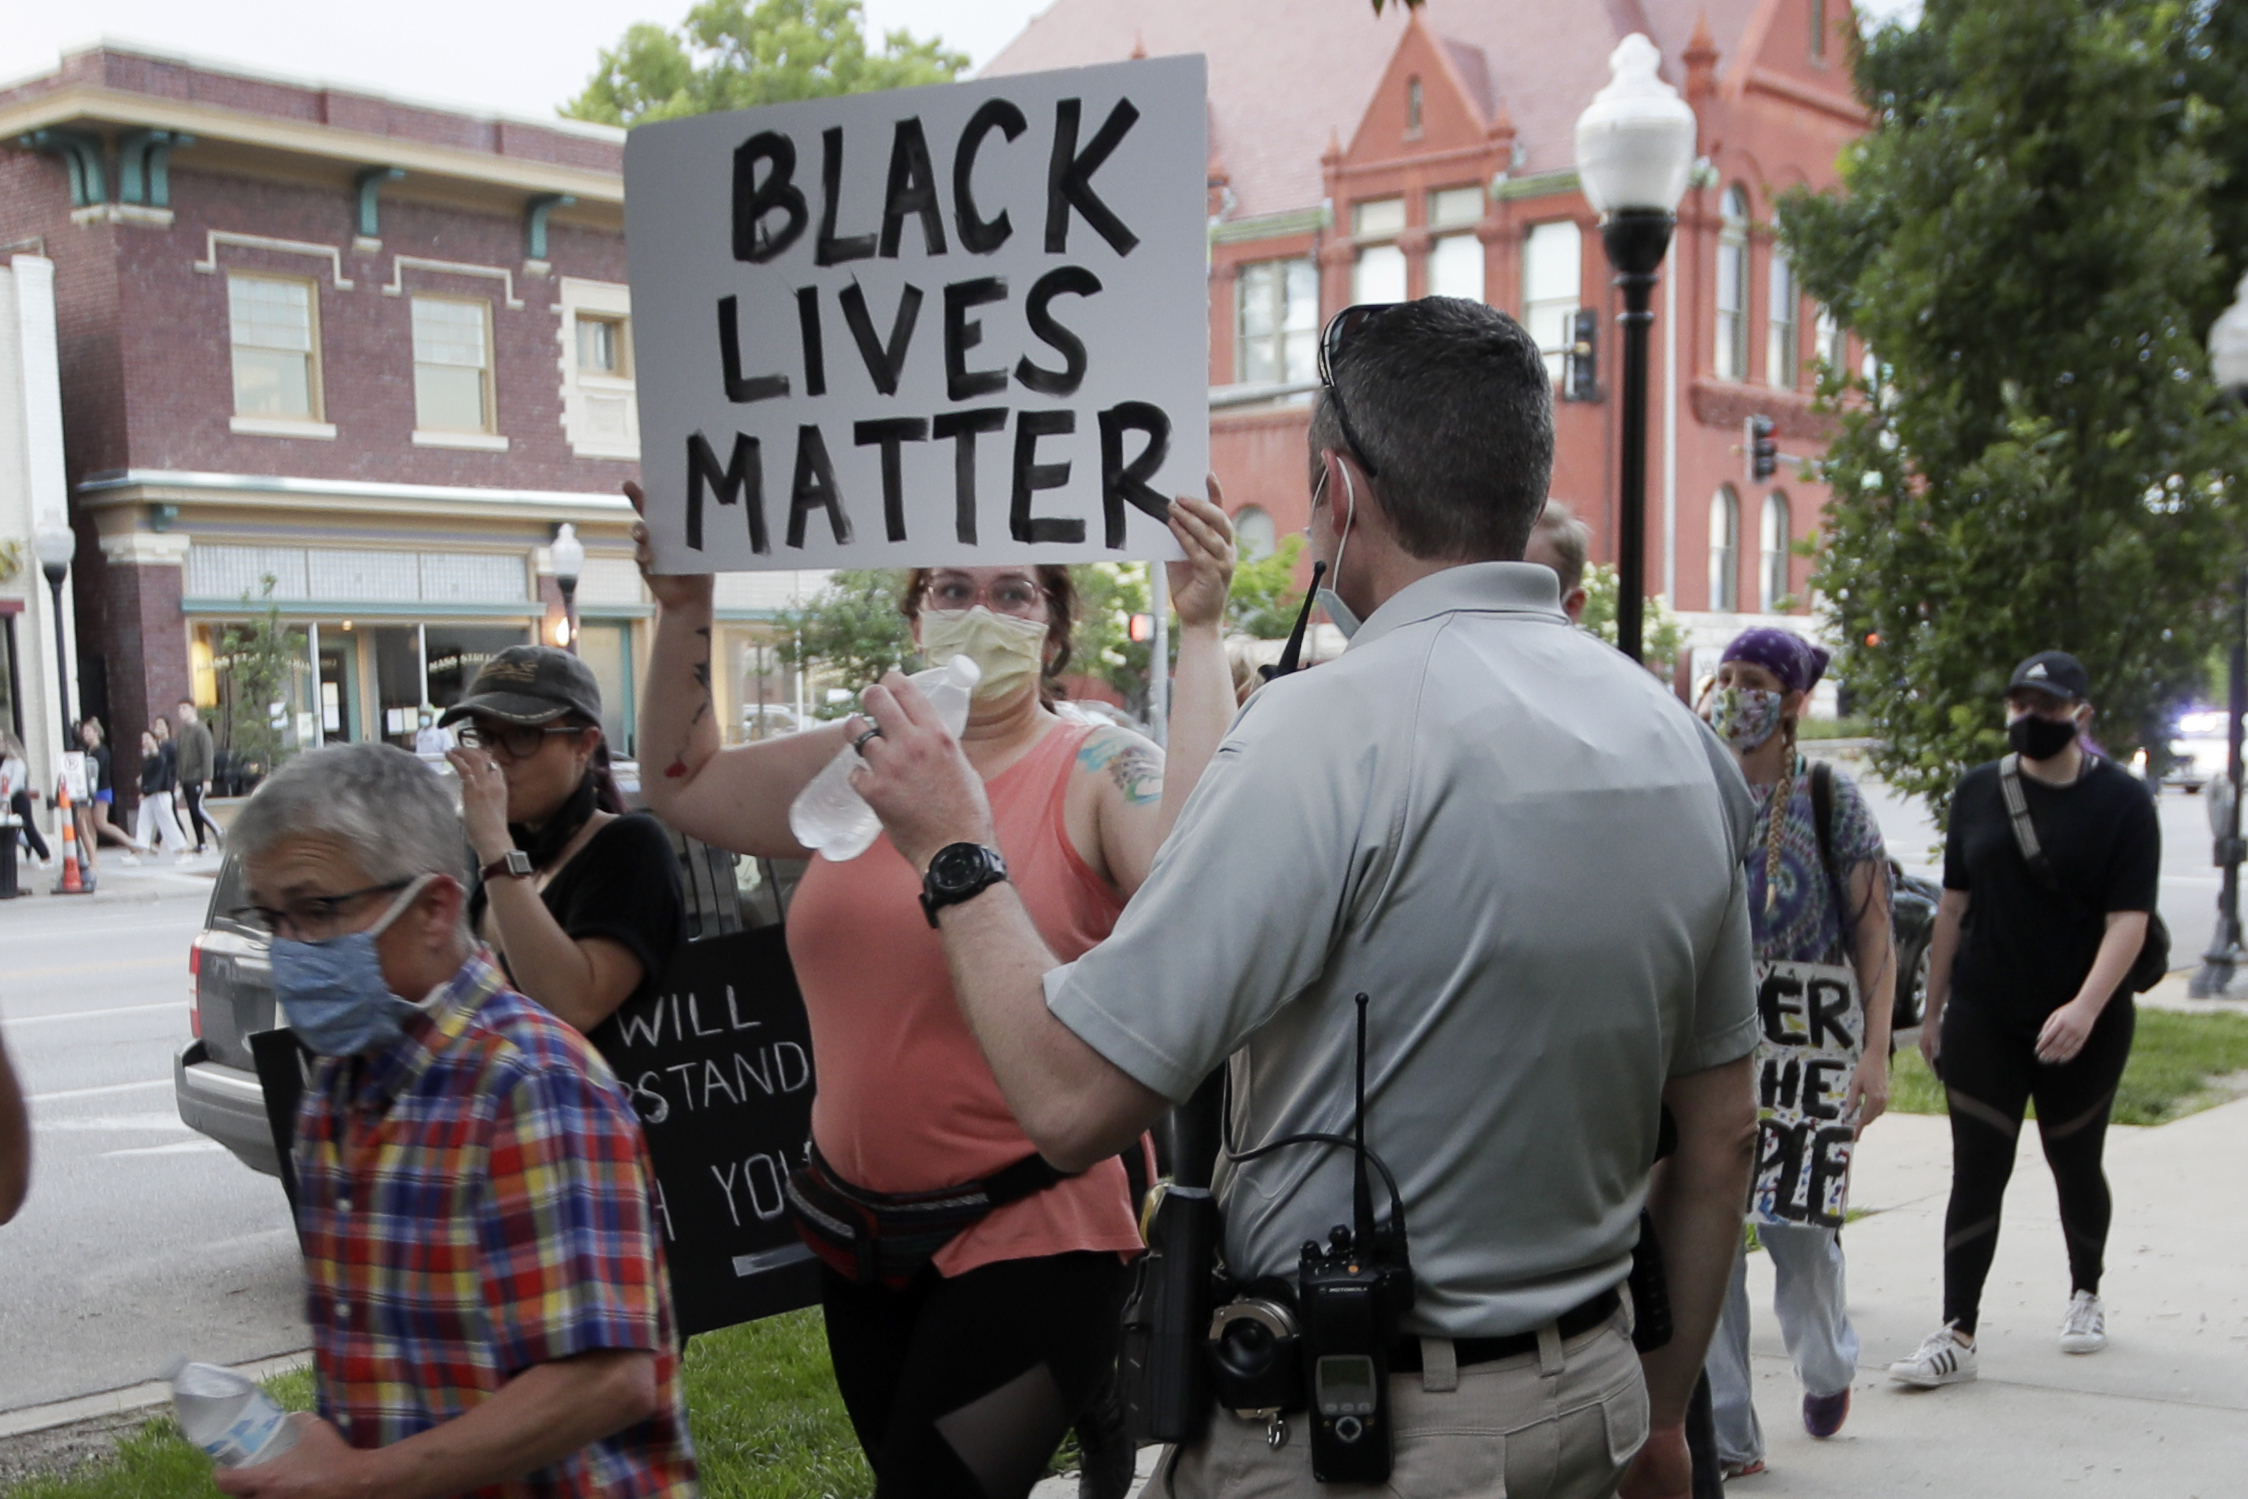 A Lawrence police officer hands water to protesters in Lawrence, Kan., Sunday, May 31, 2020, during a demonstration over the death of George Floyd, who died after being restrained by Minneapolis police officers on May 25. (AP Photo/Orlin Wagner)